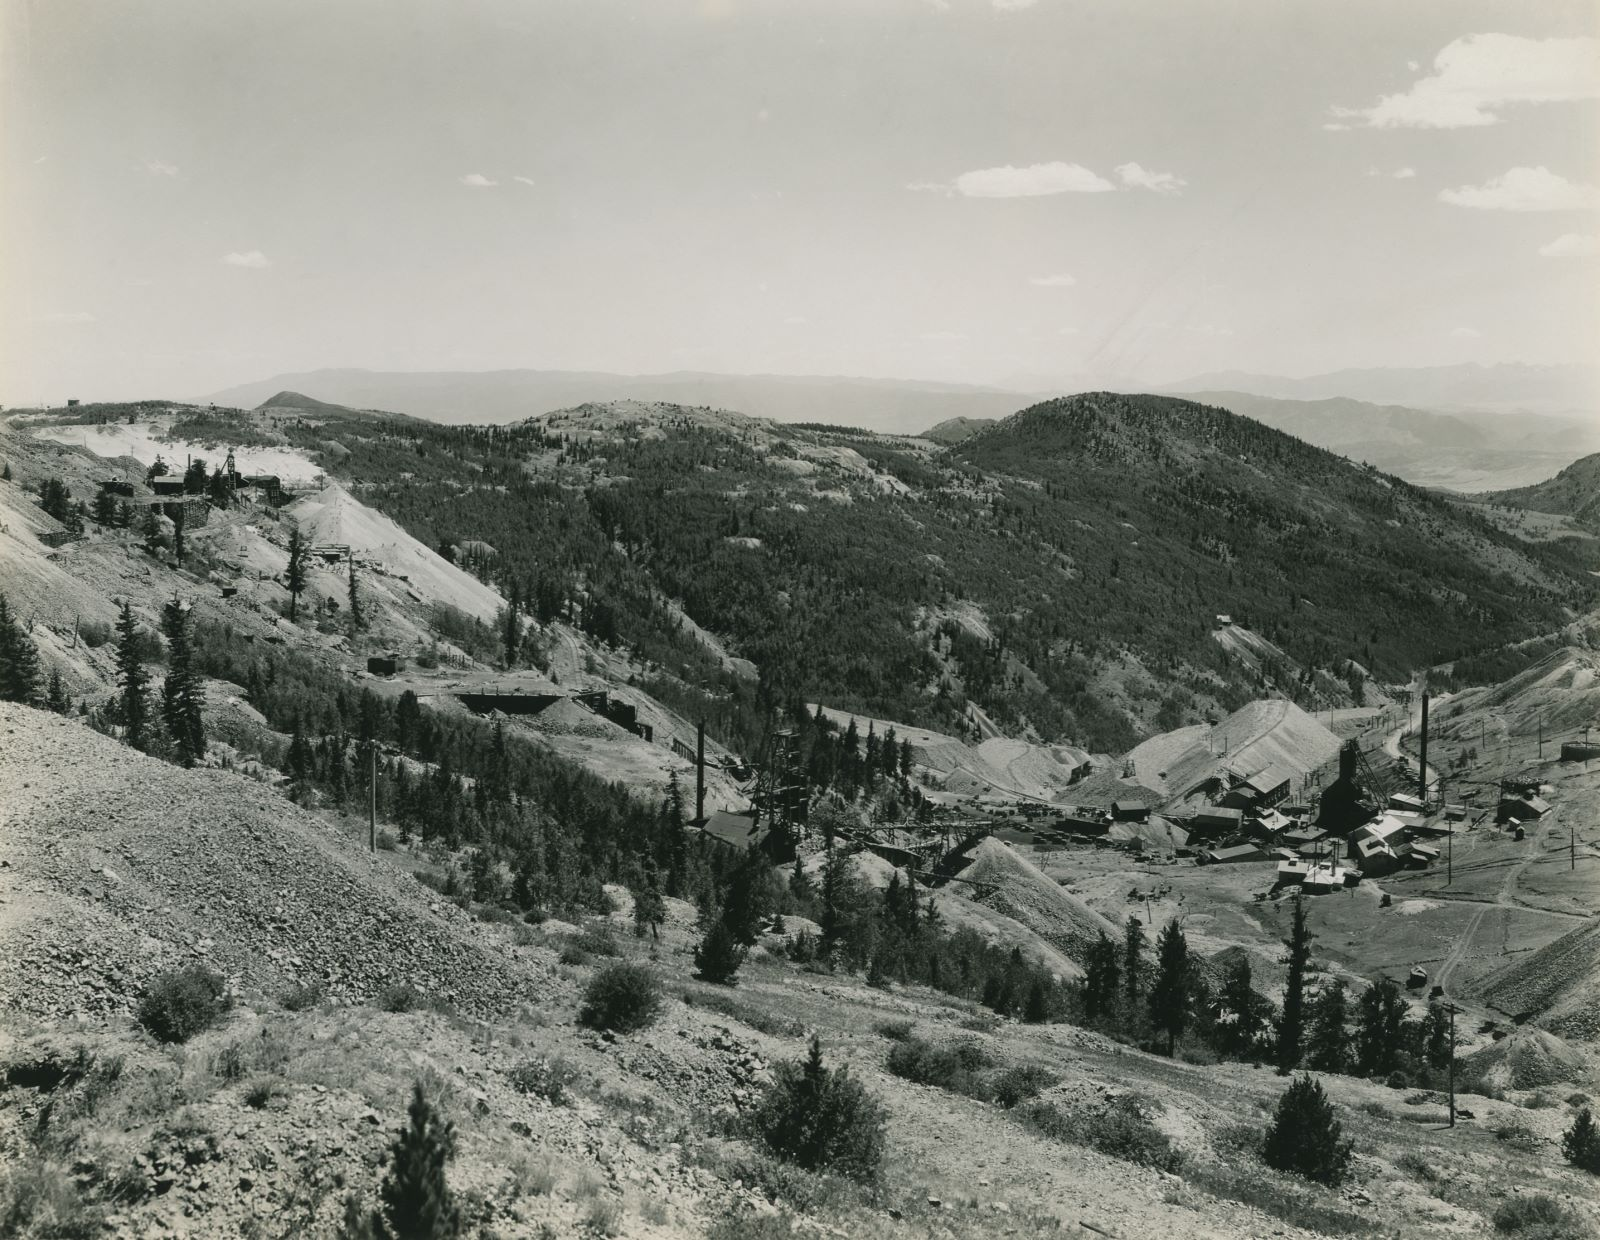 This photo is from the western slope of Bull Hill, looking towards south, southwest near the John A. Logan mine. Down in the valley on the right-hand side of this image is the Cresson Mine, while about center sideways and 1/3 up from bottom is the Head-frame of the Gold Sovereign Mine, with the ruins of the Trilby Mill/Mine further left and a piece of the Gold Sovereign Branch line off the High Line seen climbing the hill below a big dump from one of the Dante Mine shafts seen near left-hand side about 1/3 down from top. The hill seen about 1/3 in from right-hand side is Squaw Mountain, and on the slope down into Eclipse Gulch is seen the mine operation that I think would be the Carbonate Queen. Seen about middle top/down and about 1/4 in from right-hand side.